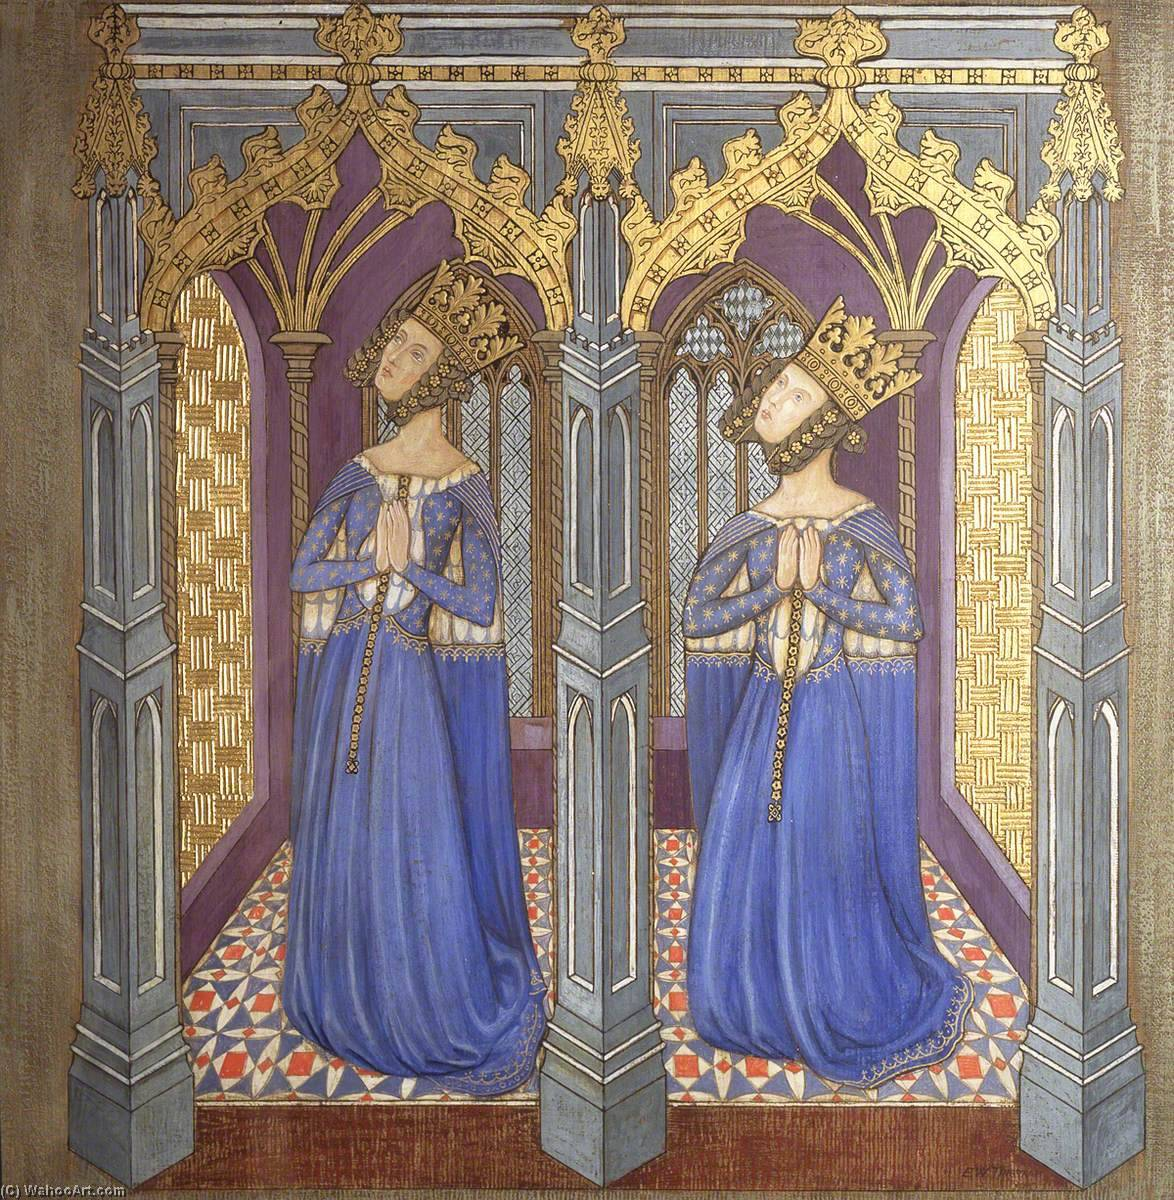 Reconstruction of Medieval Mural Painting, Possibly Queen Philippa with Daughter, 1927 by Ernest William Tristram | Museum Art Reproductions Ernest William Tristram | WahooArt.com